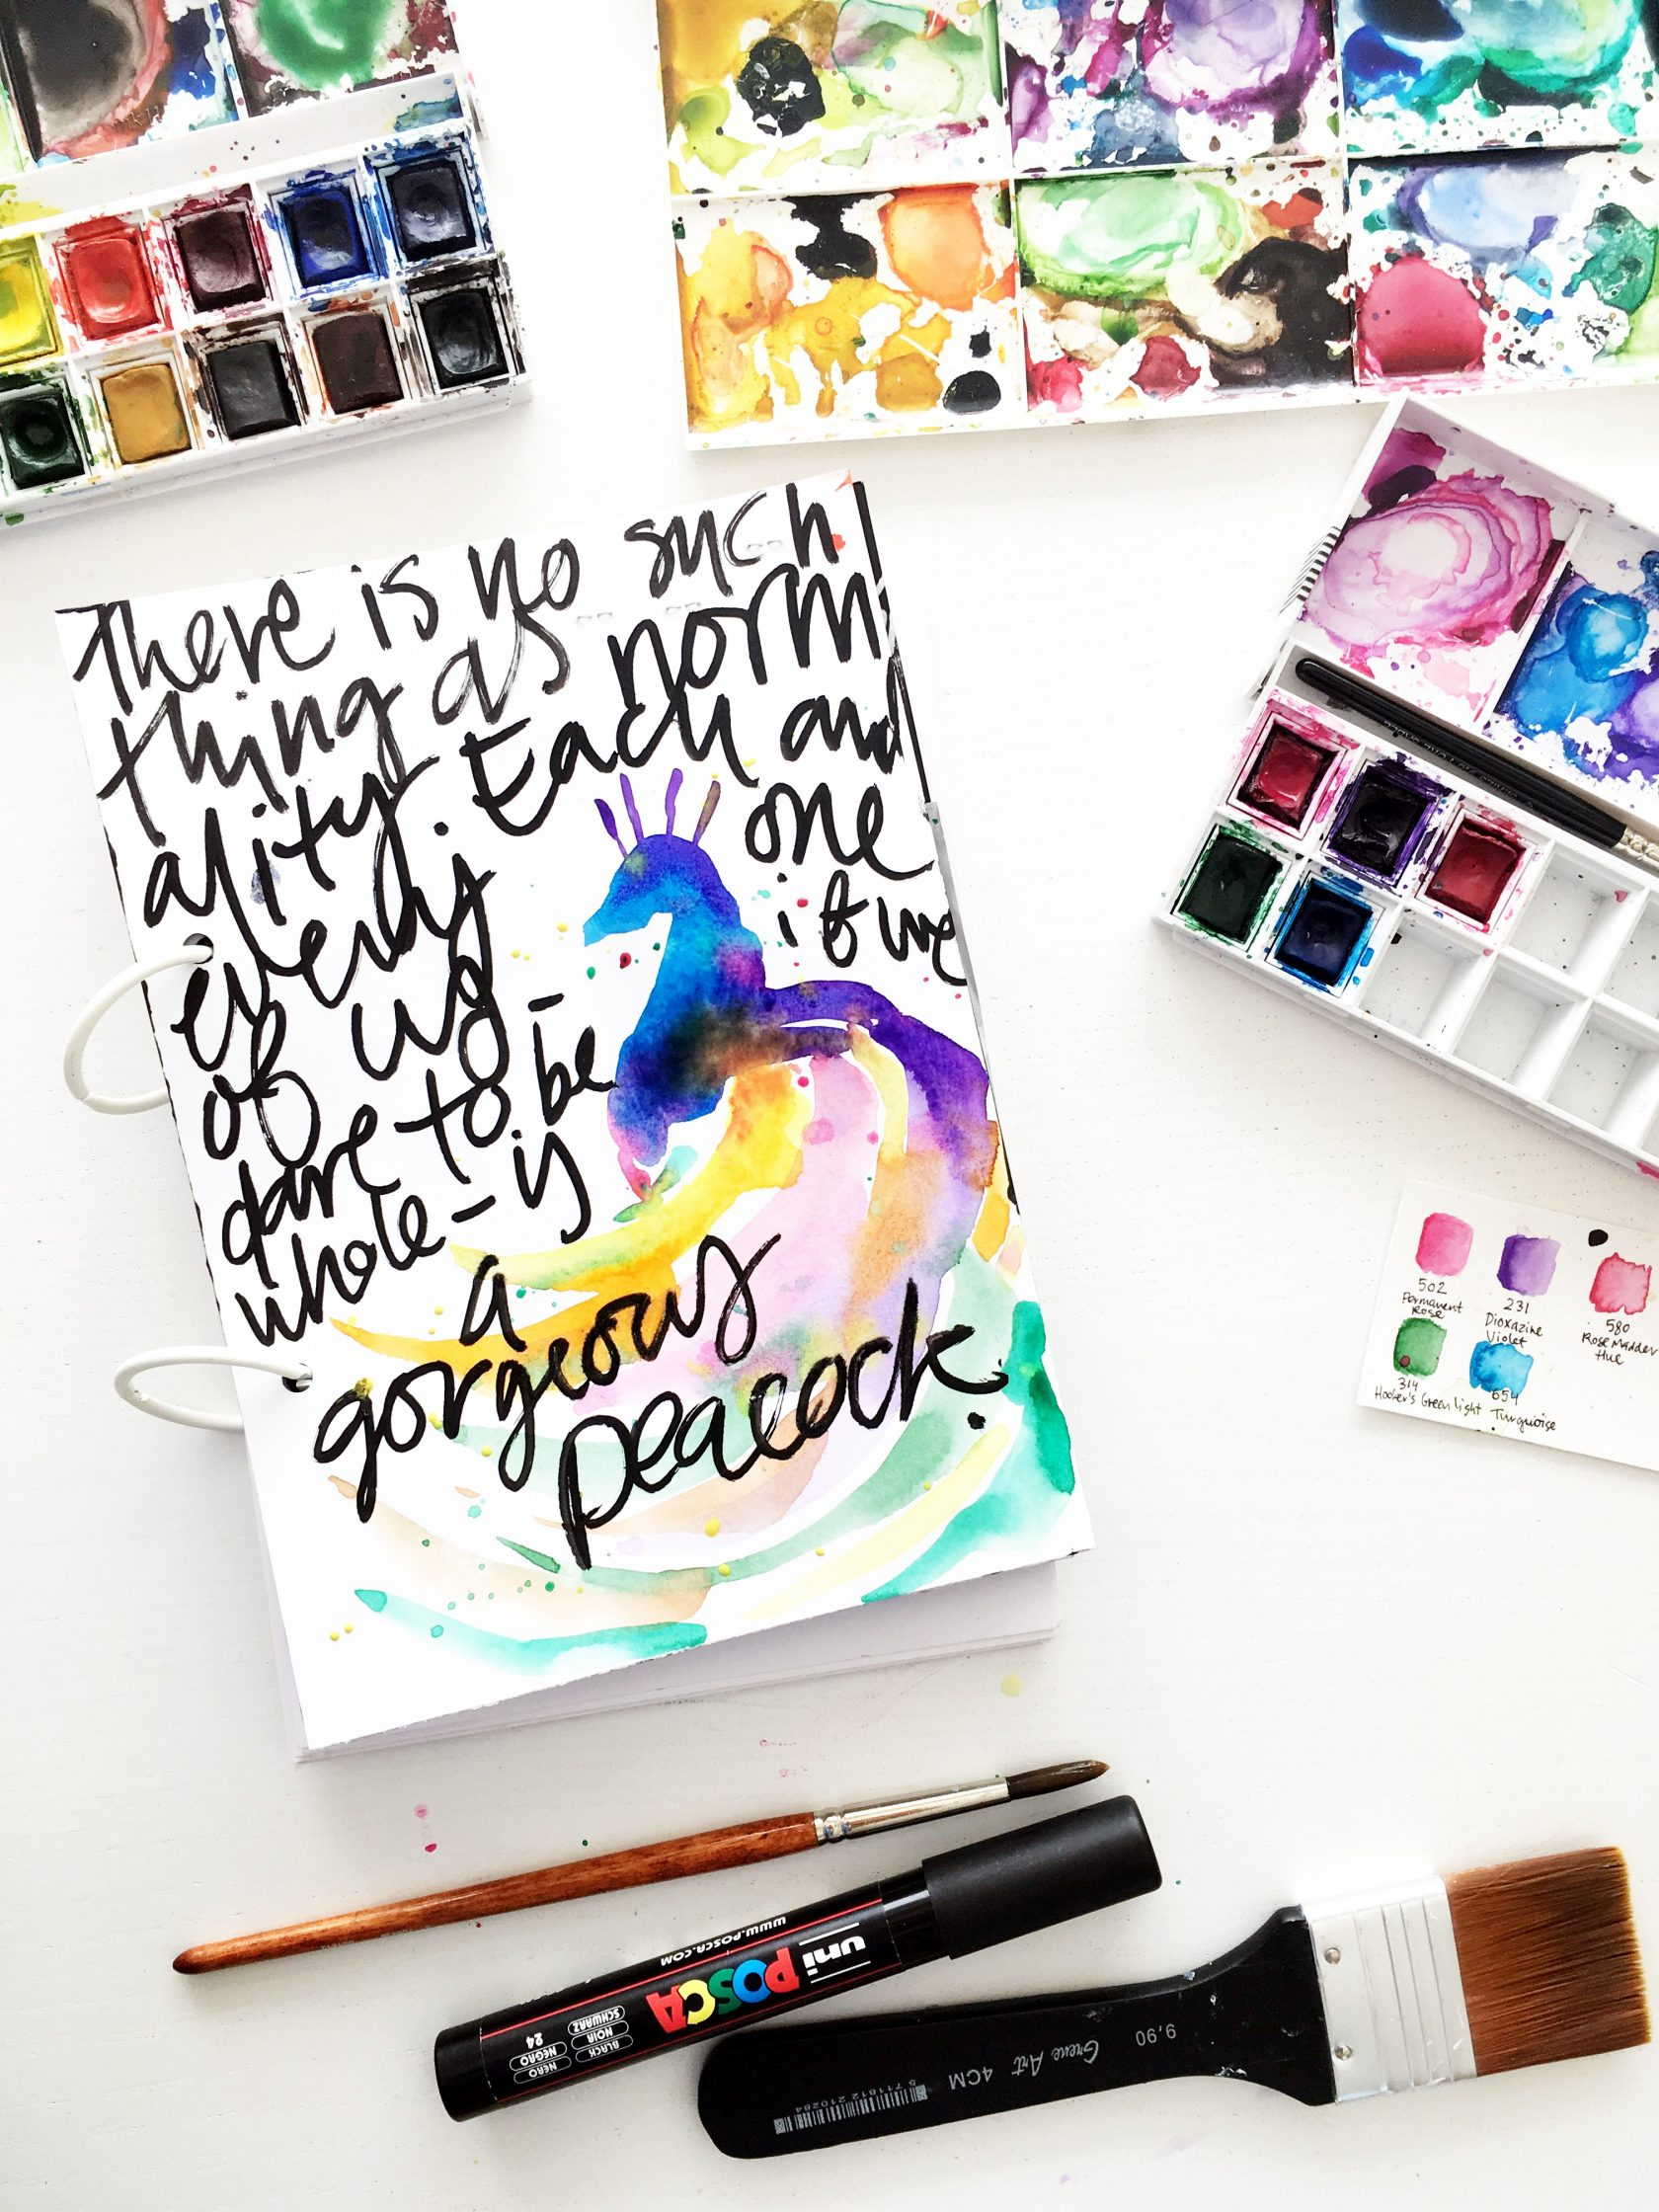 """There is no such thing as normality. Each one of us – if we dare to be whole – is a gorgeous peacock."" RuPaul 